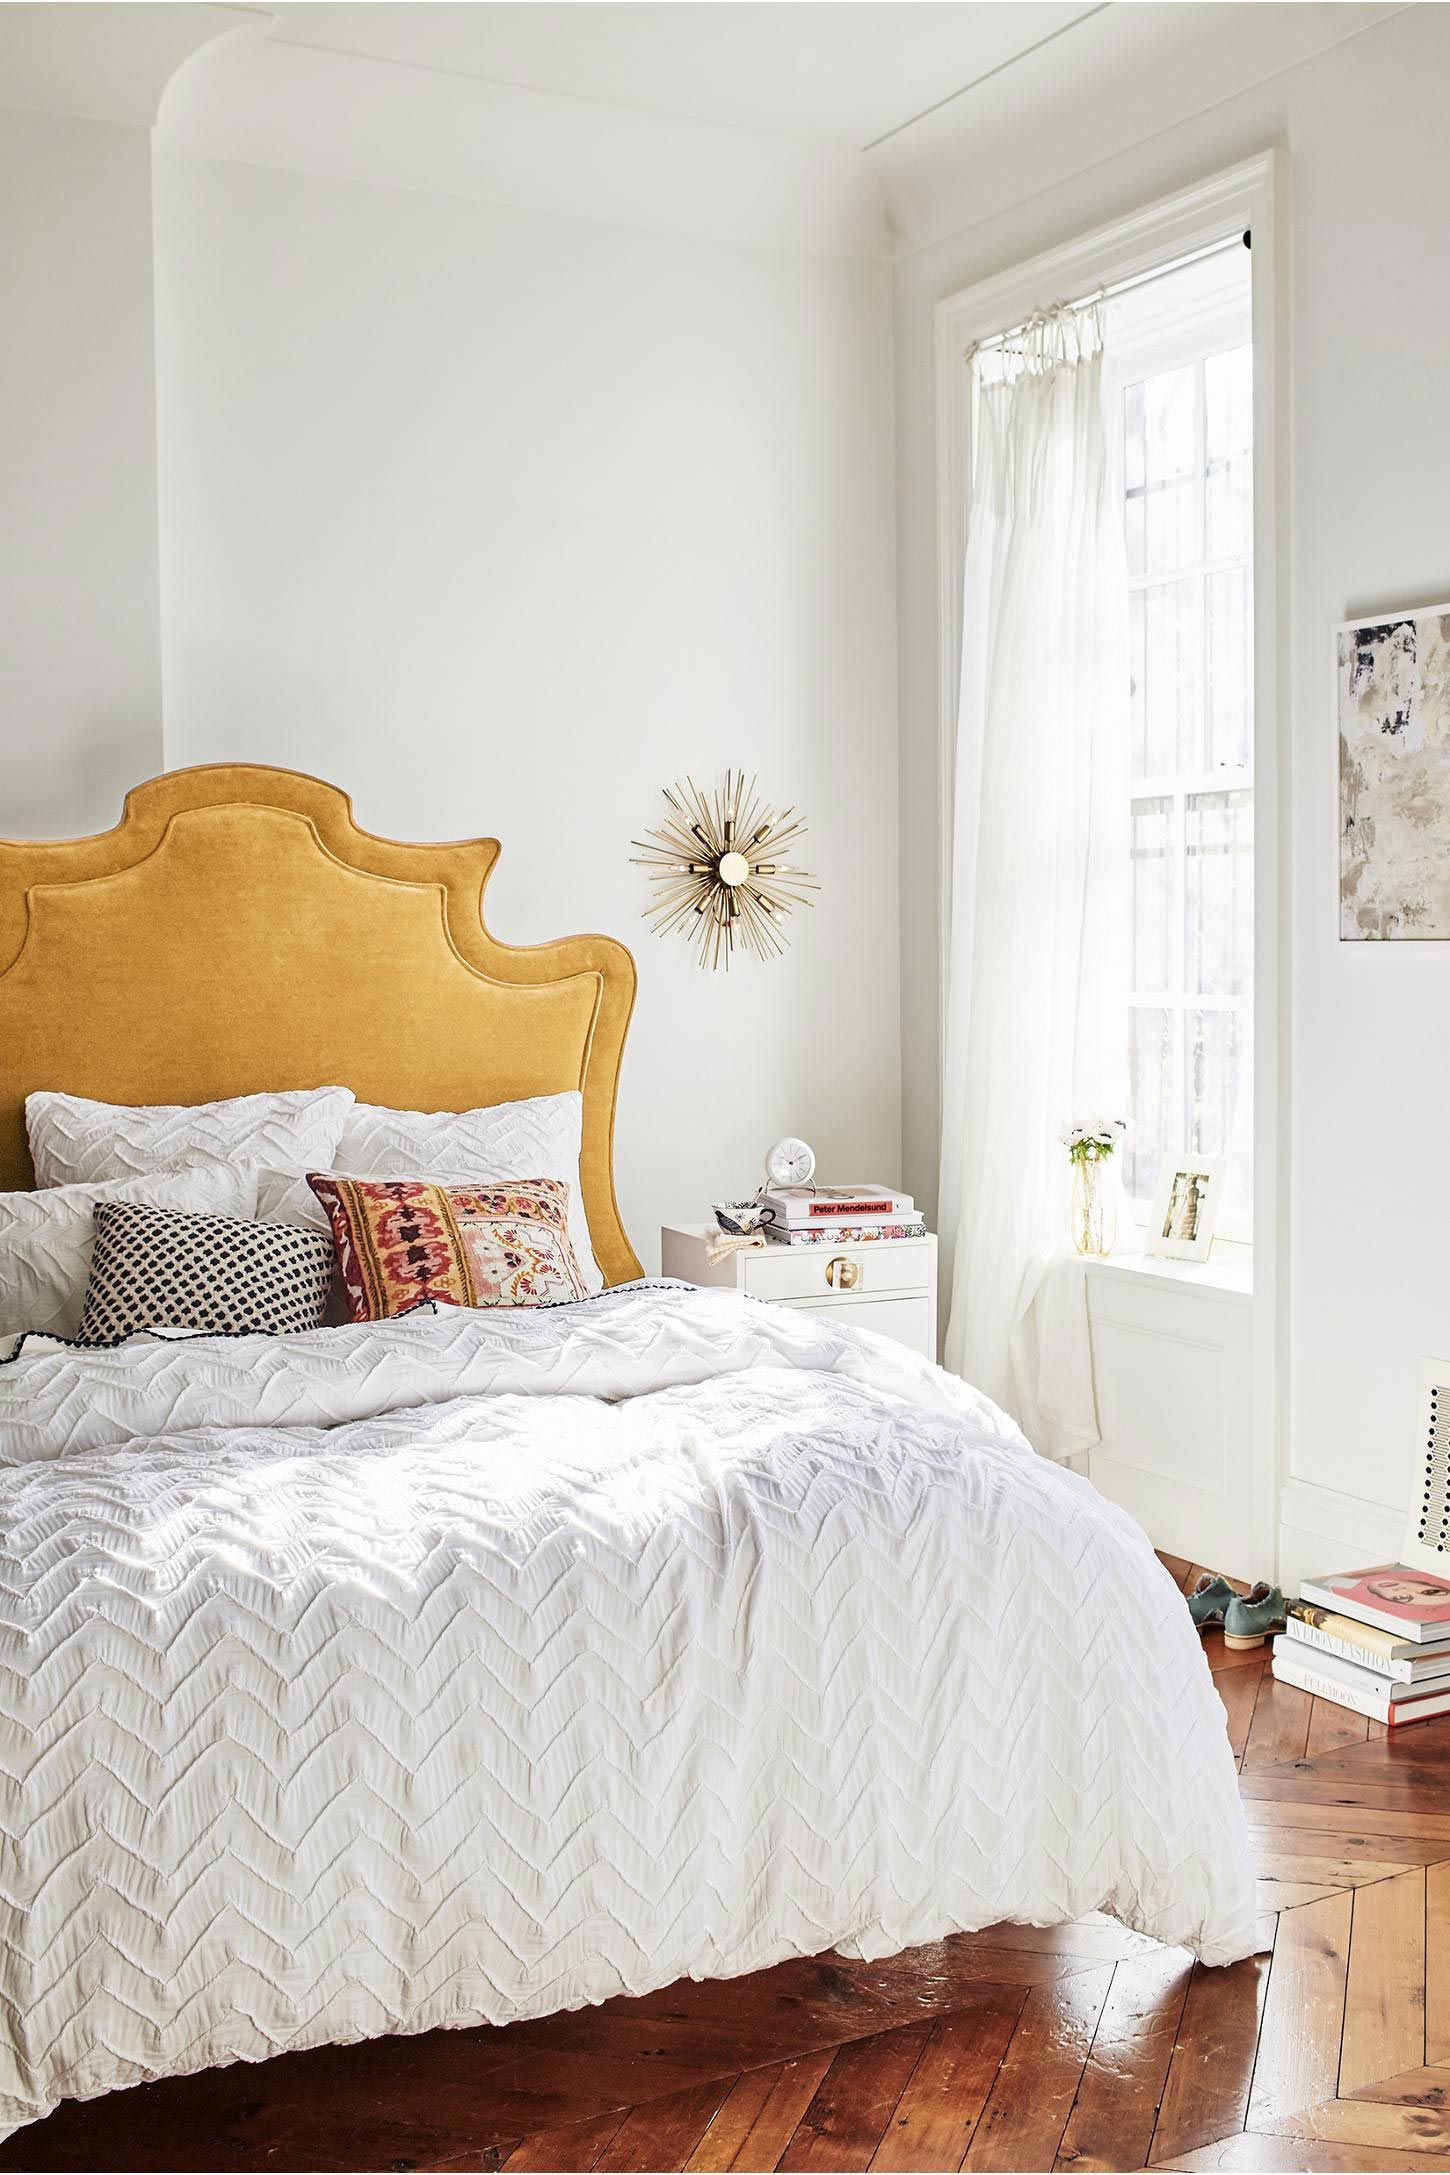 10 Tiny Decor Changes To Make Your Room Feel All Fresh And New Again